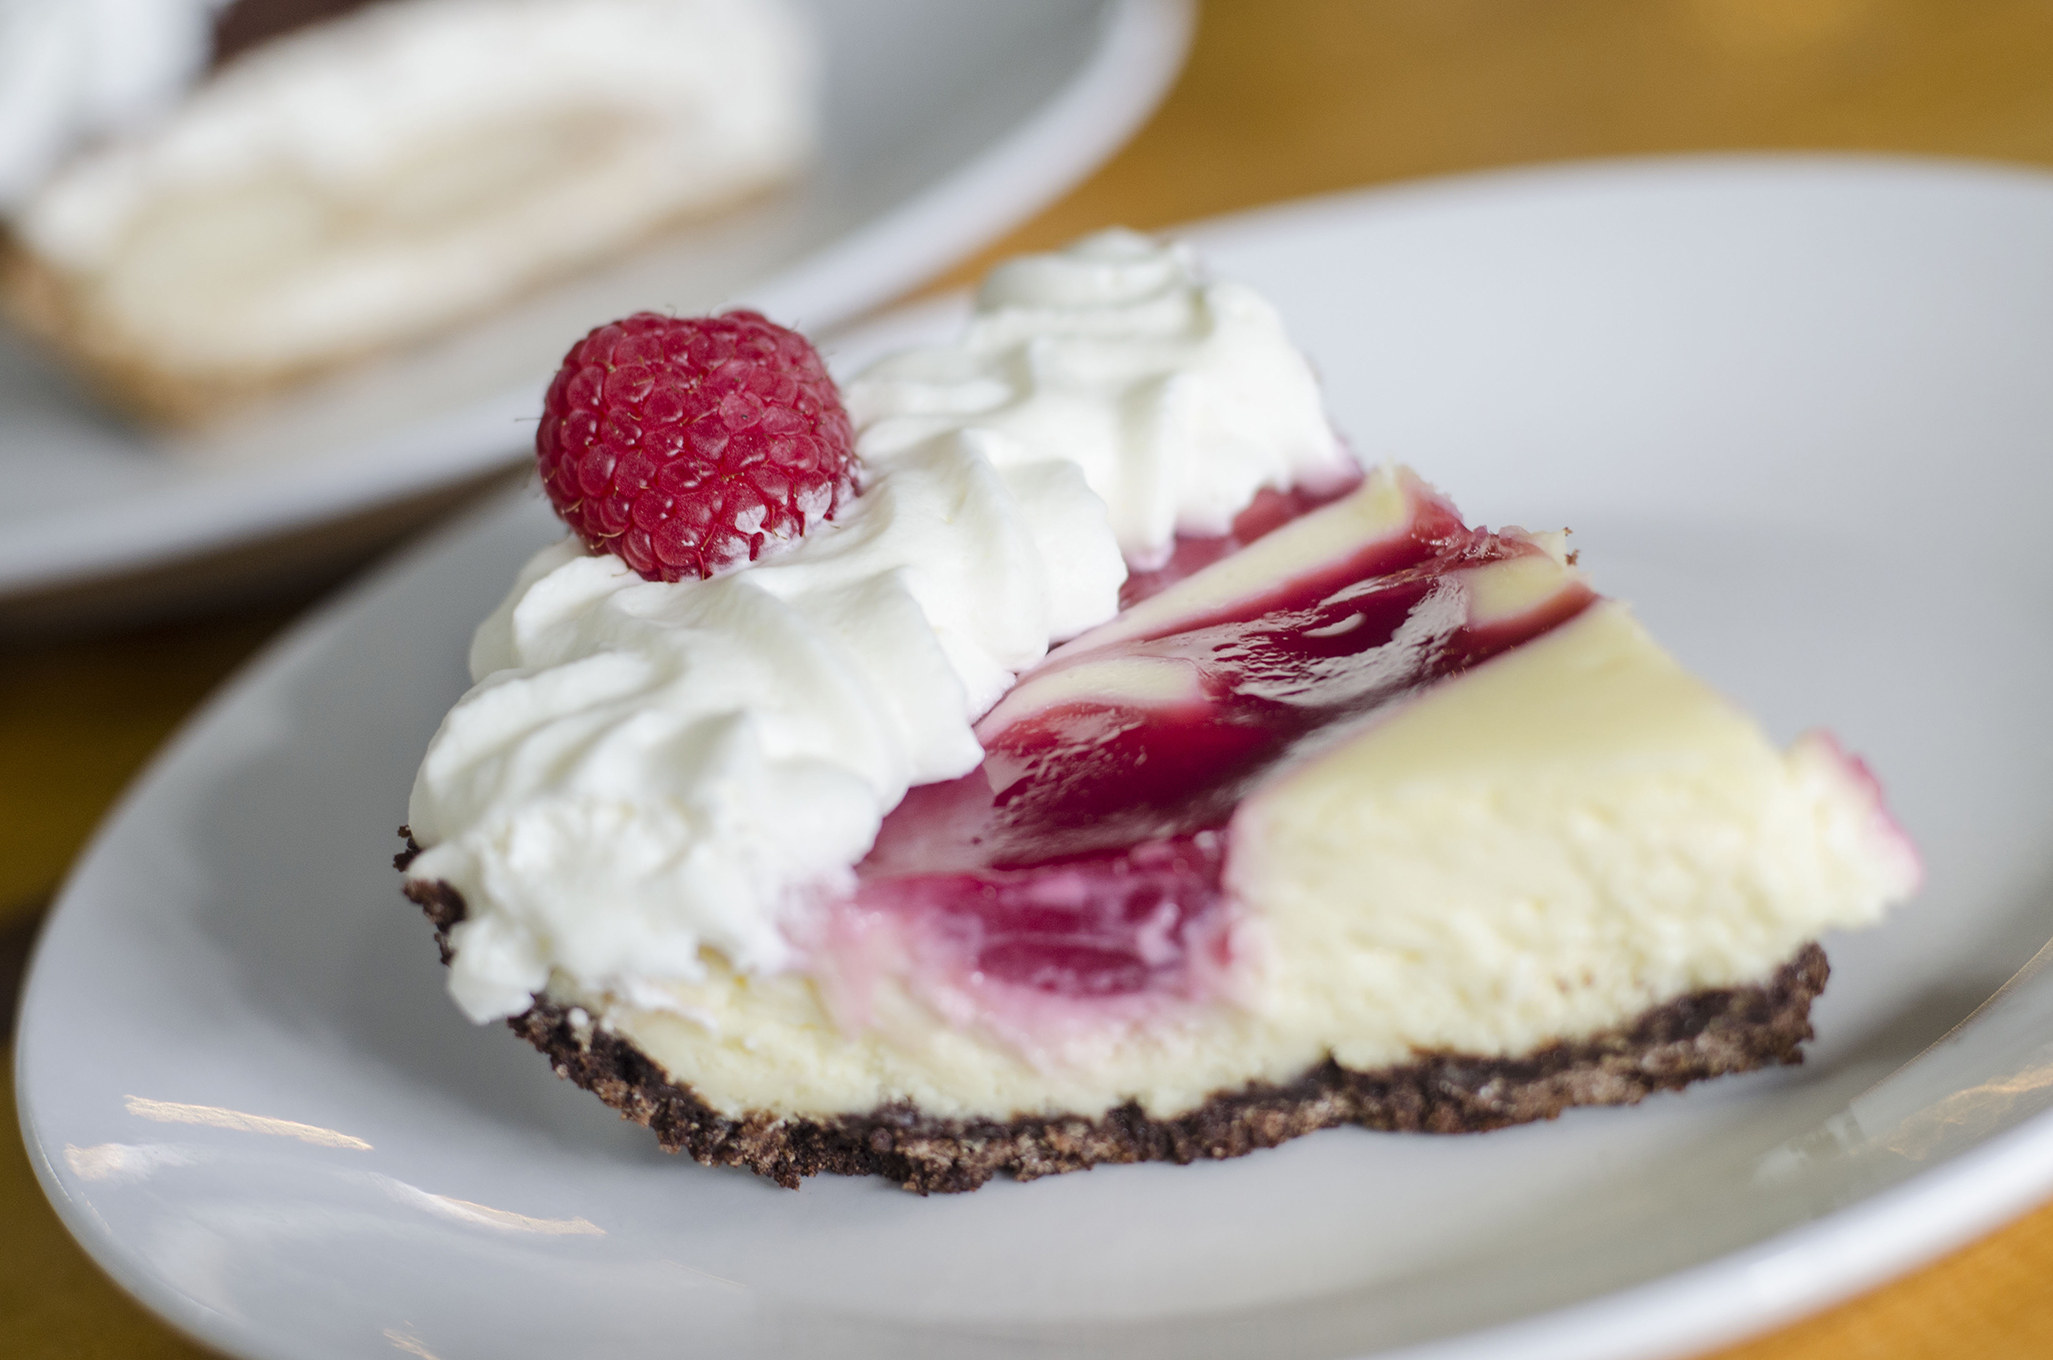 The Raspberry Swirl Cheesecake Pie from Riverside Pie Cafe in Windsor, Ontario.